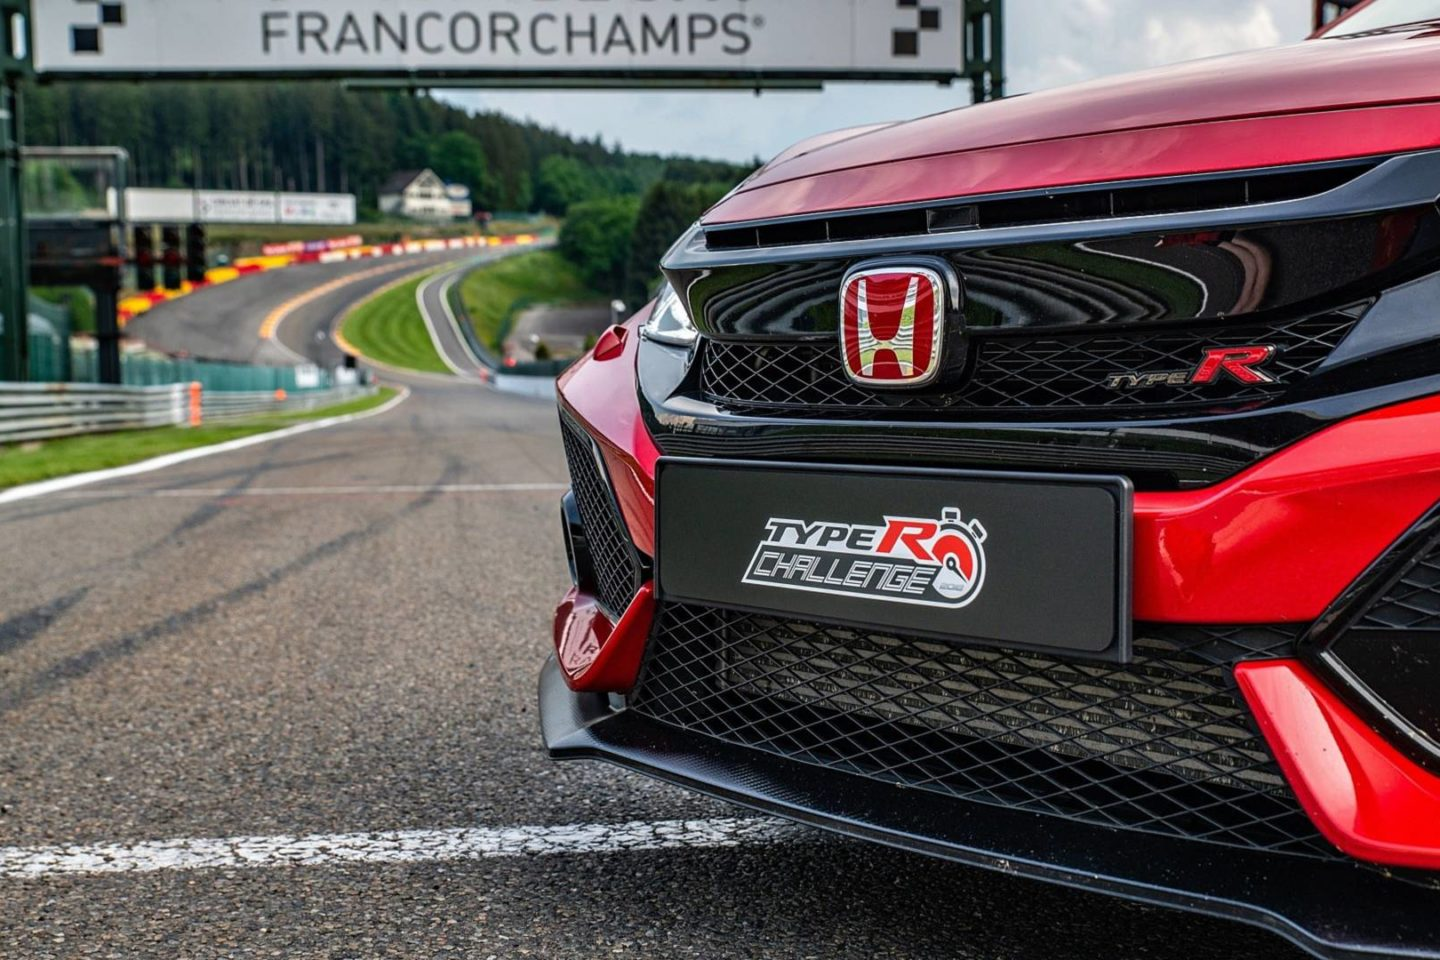 Honda Civic Type-R Spa-Francorchamps 2018